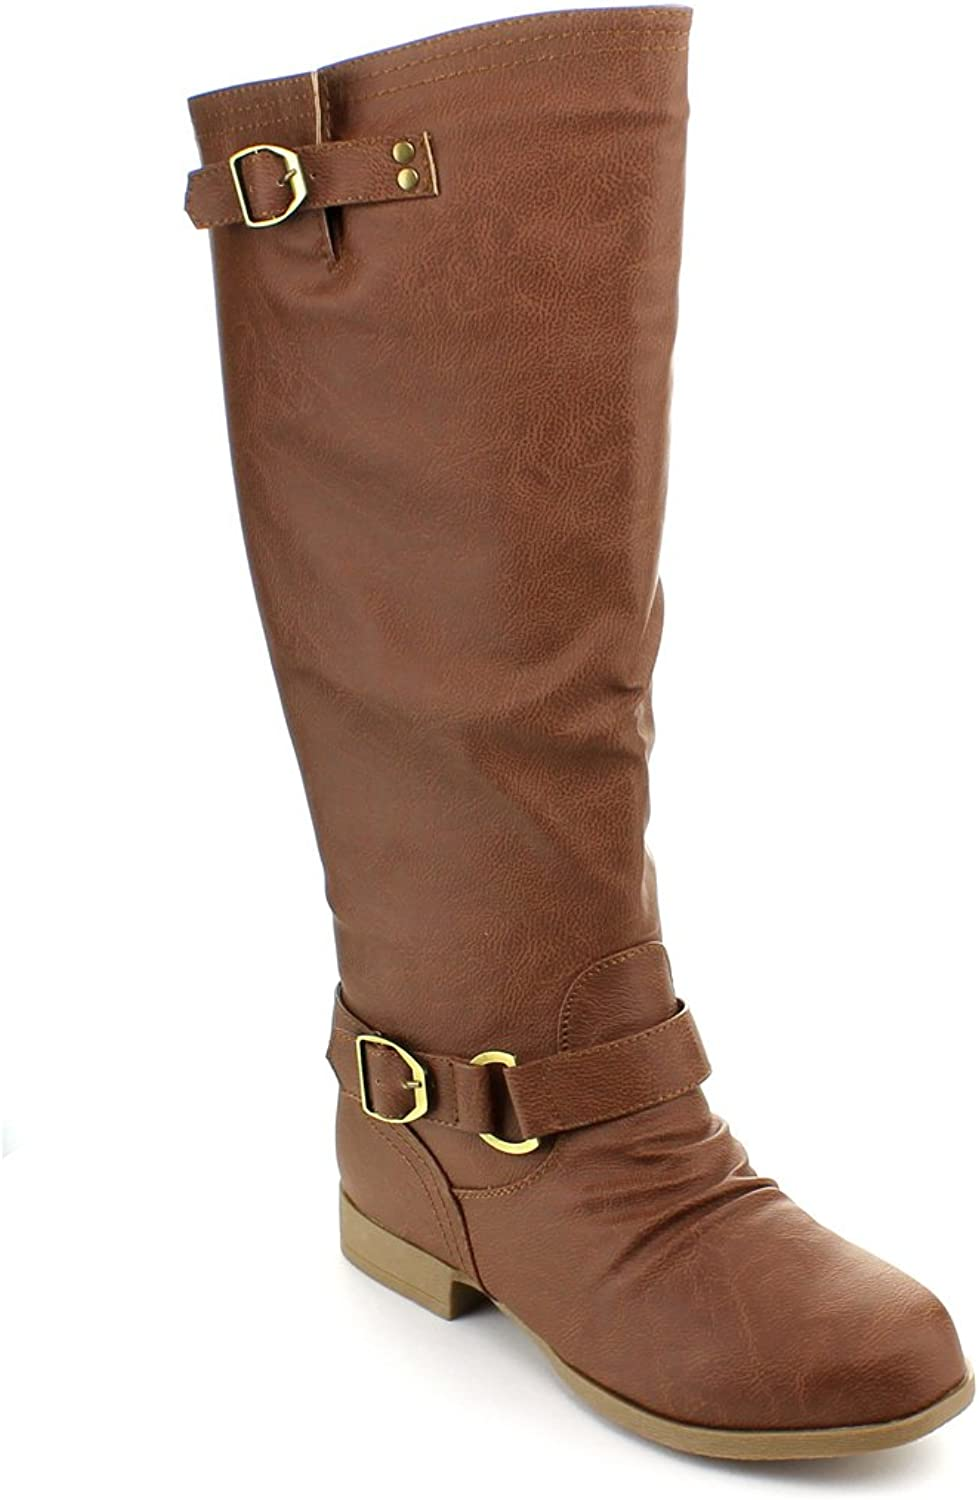 Top Moda Womens Land-7 Knee High Round Toe Riding Boots